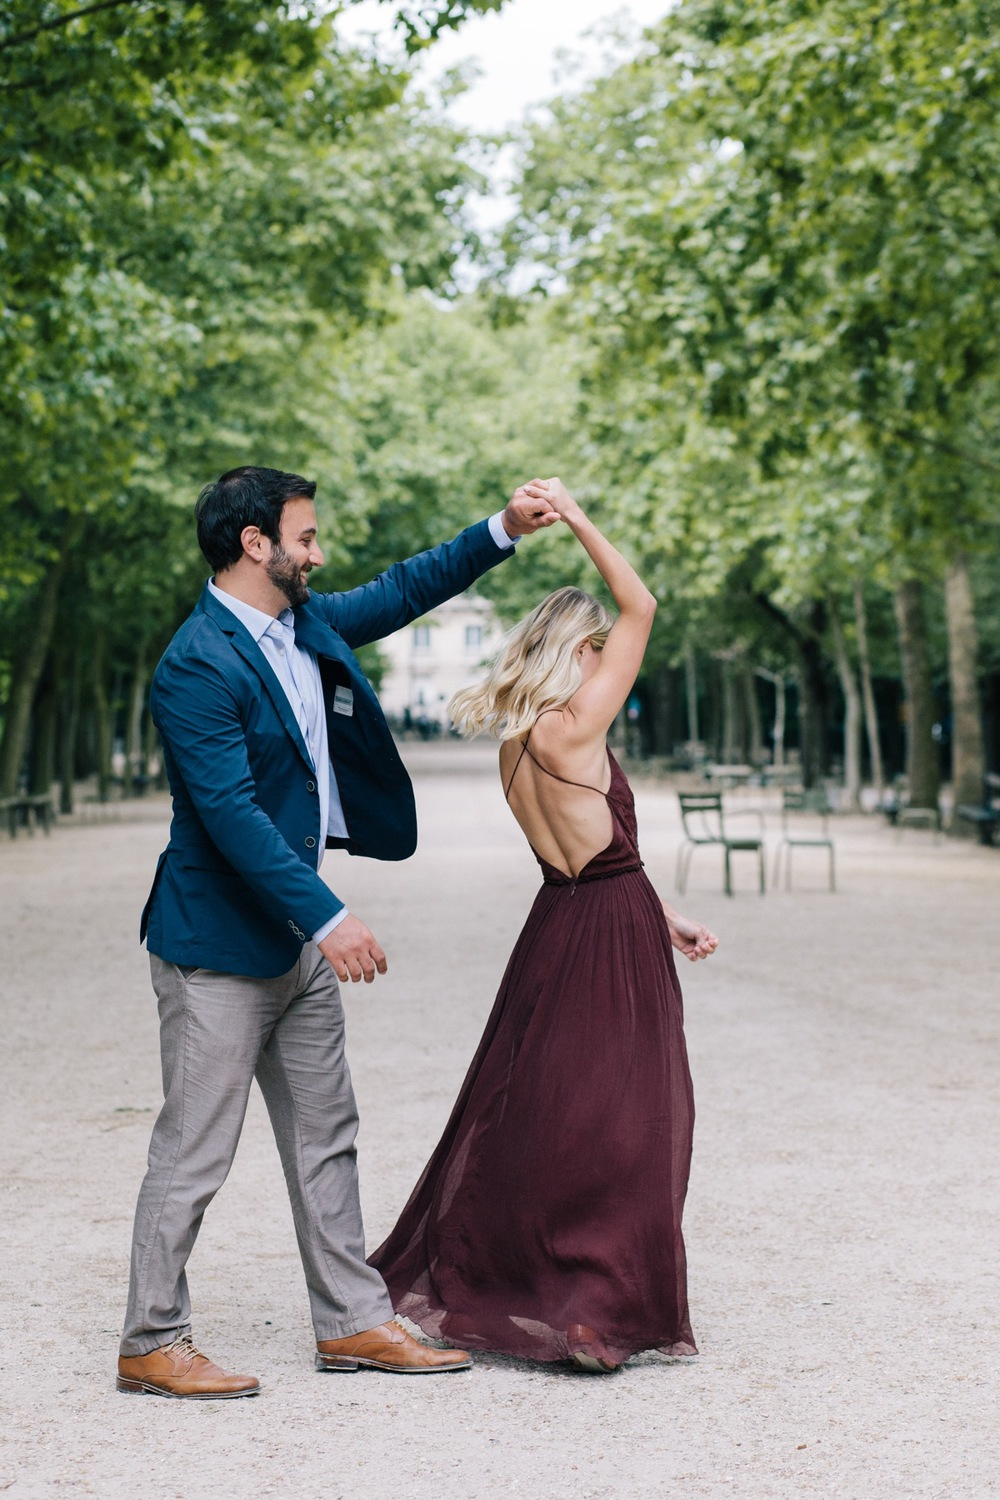 Jardin du Luxembourg Romantic Proposal